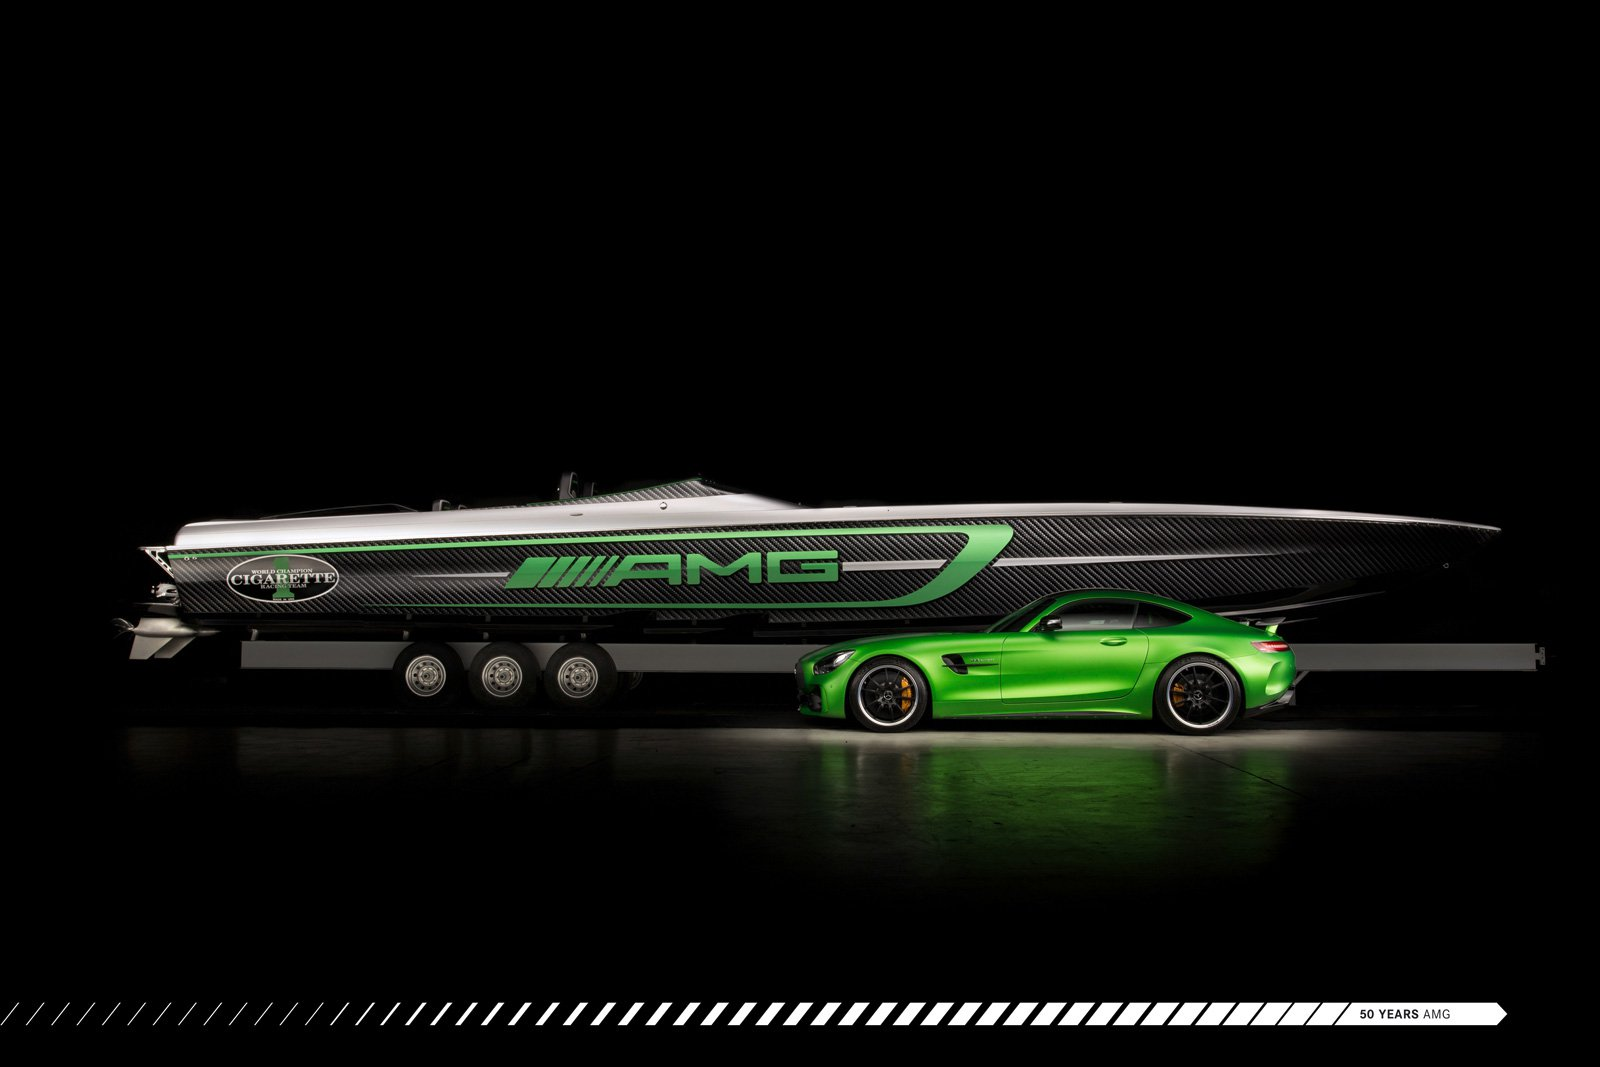 cigarette-racing-team-50-marauder-amg-boat-02